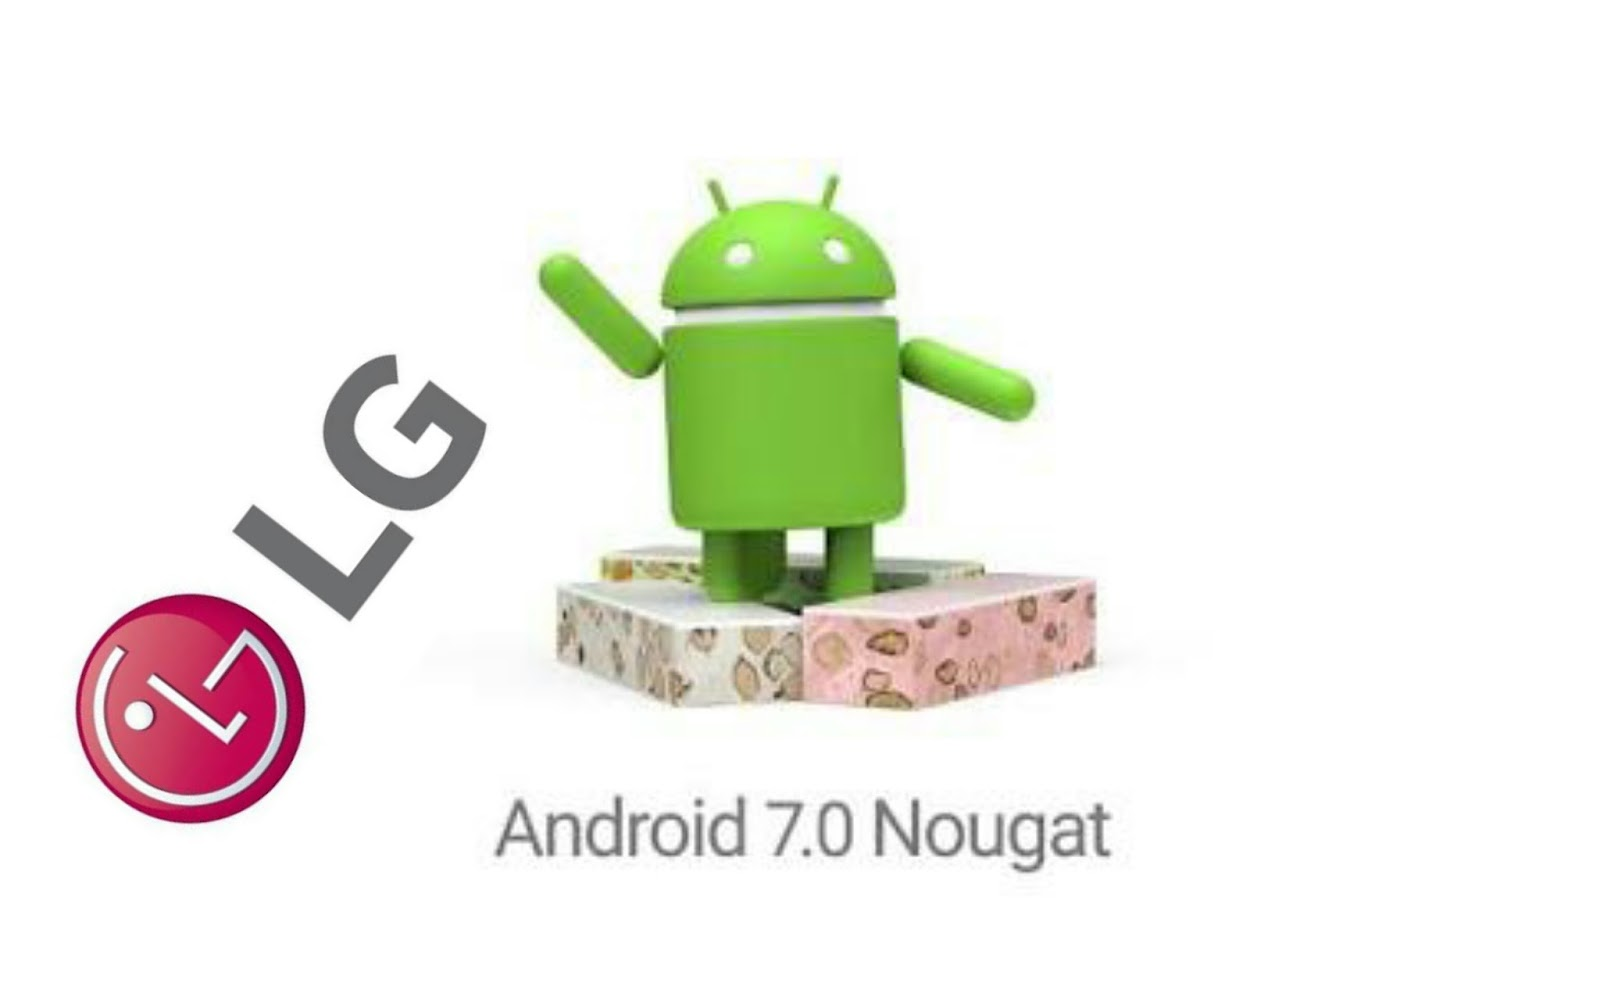 Lg android 7.0